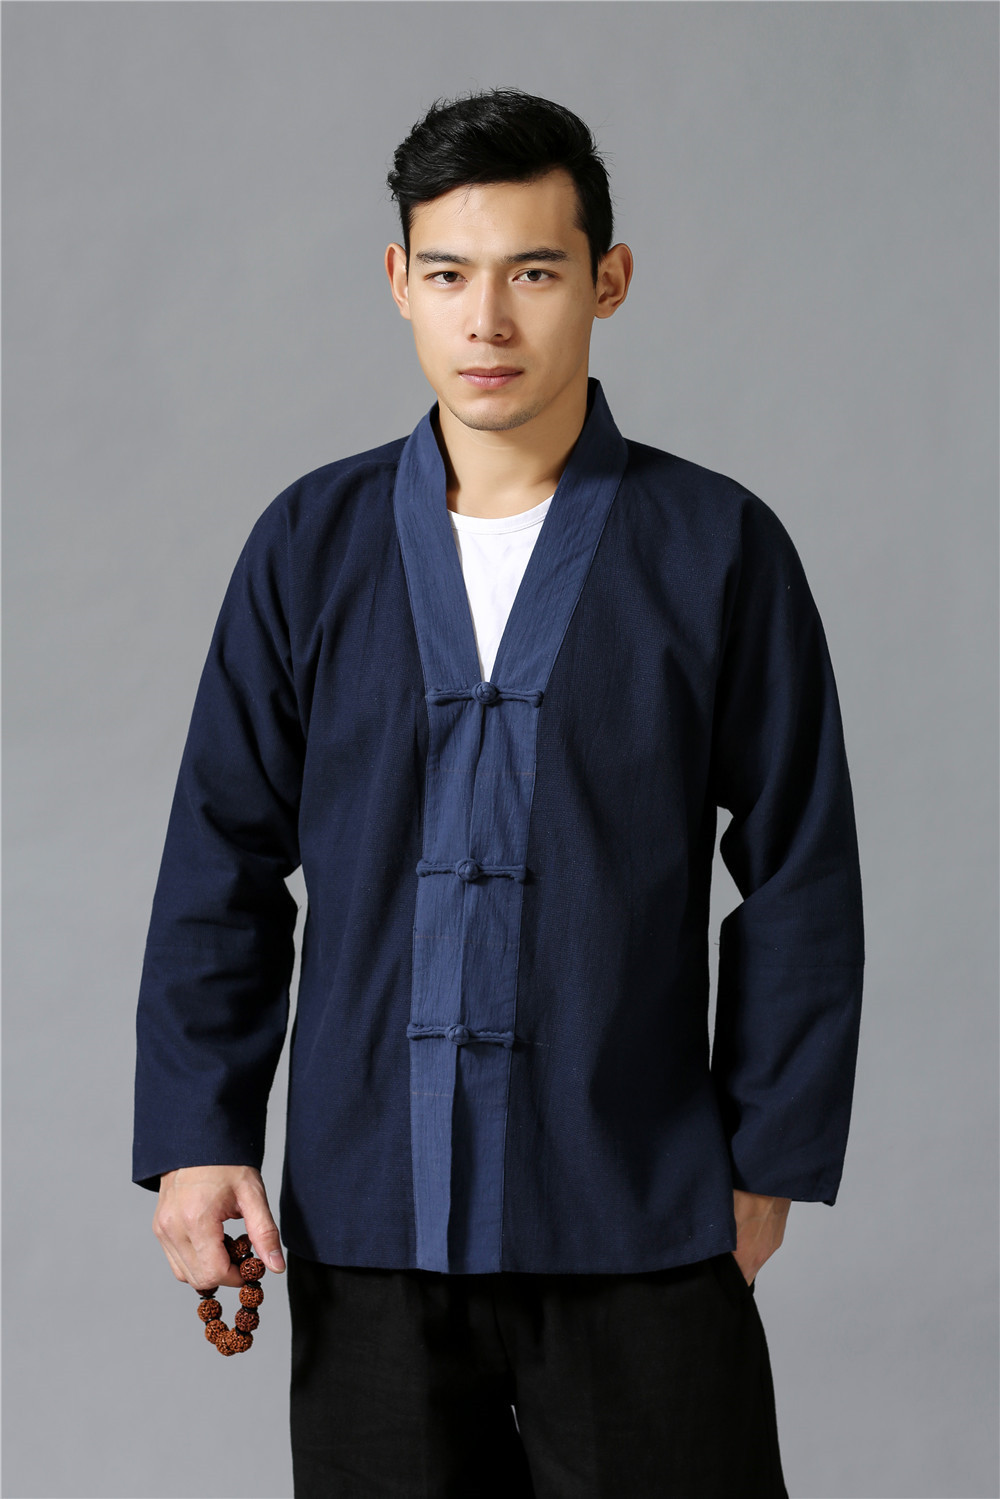 2019 Spring New Products Hand-Woven Linen He Fu Kuan Tops Chinese-style Frog Mixed Colors Cotton Linen Men'S Wear